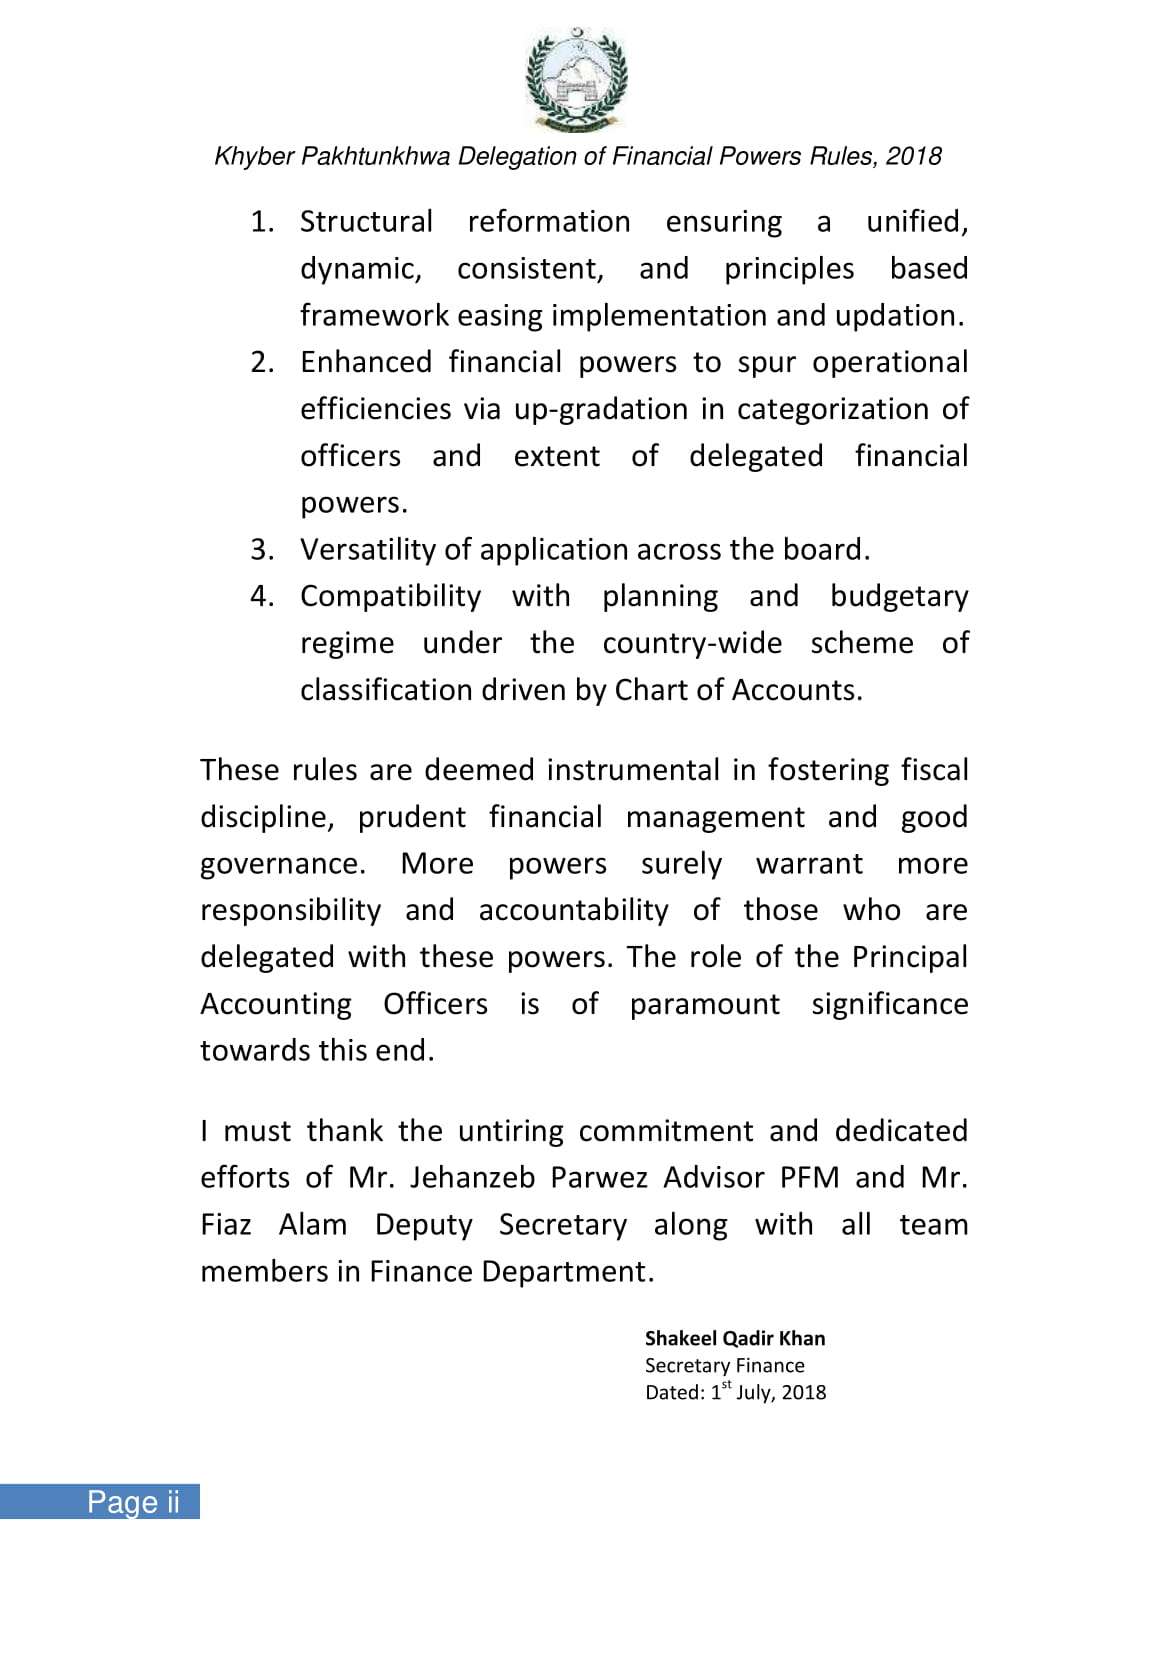 kp-delegation-of-financial-power-rules-2018-04